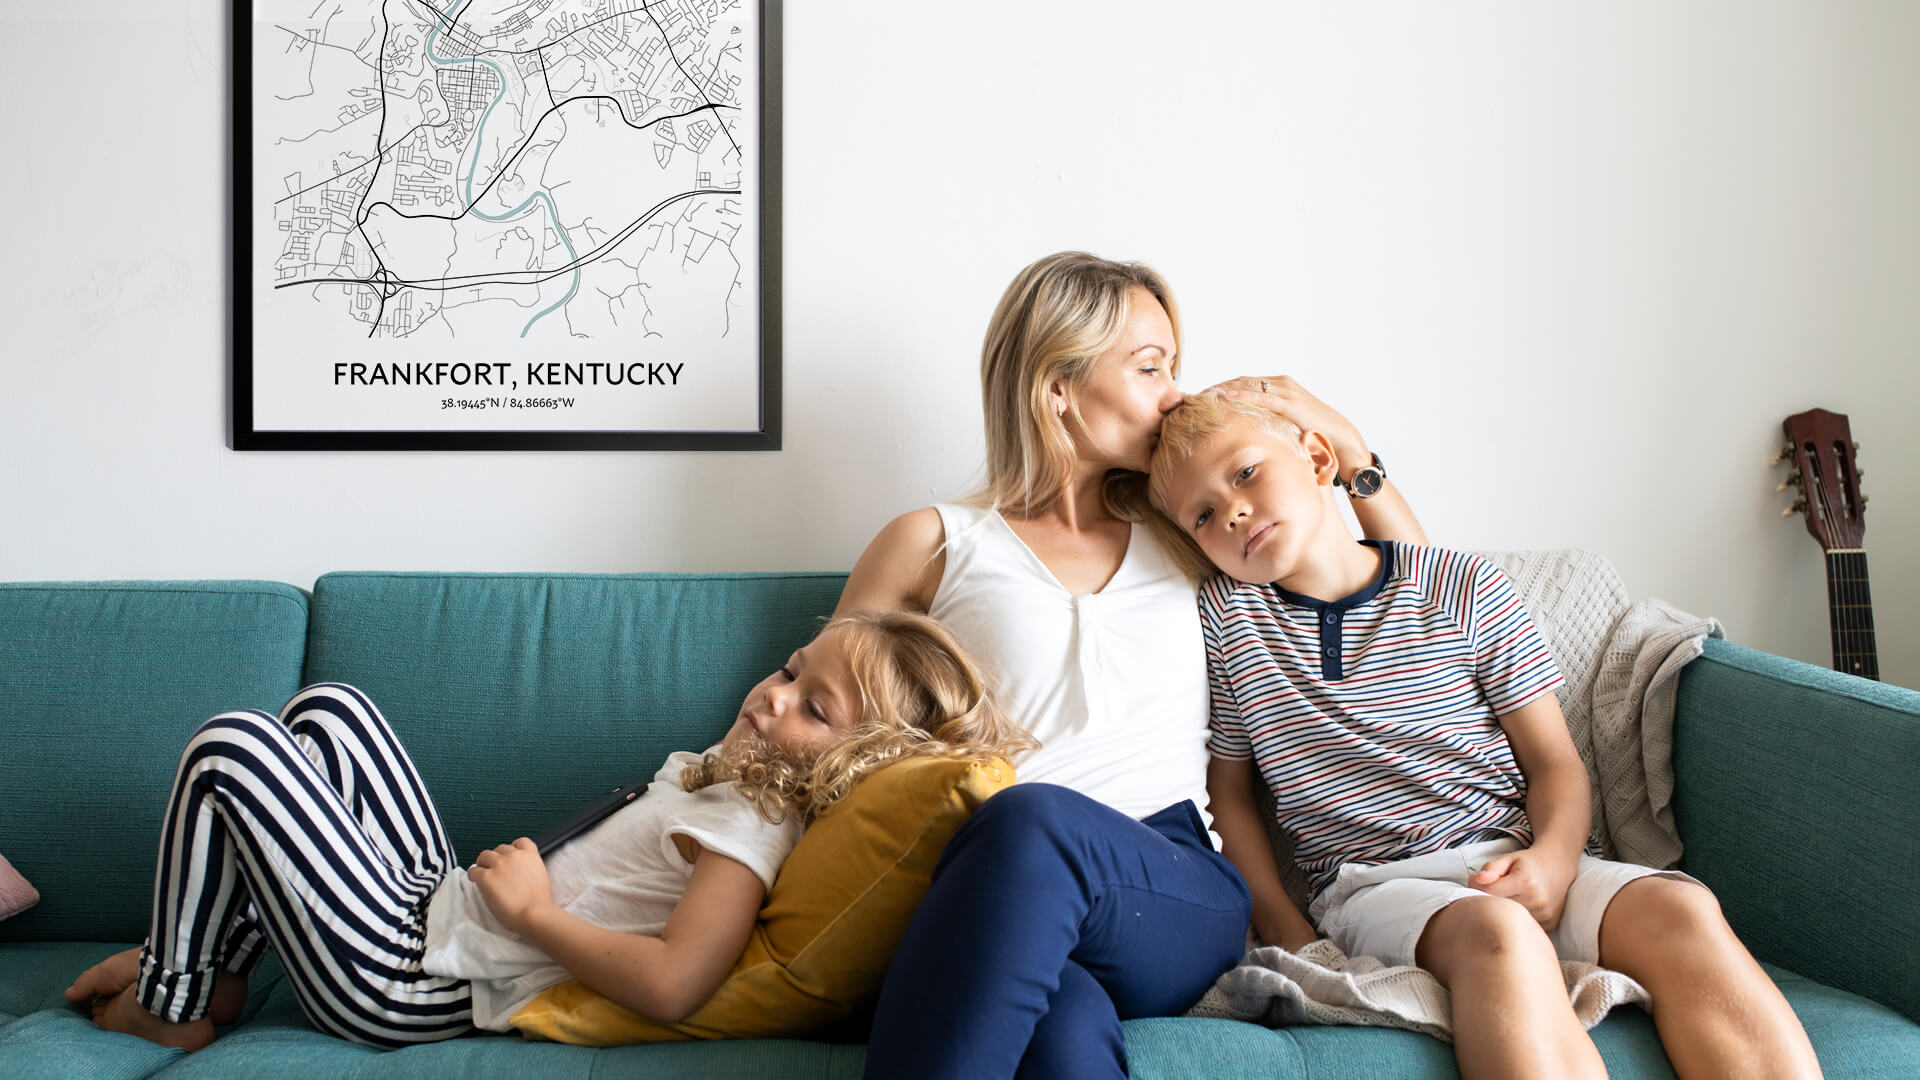 Frankfort map poster